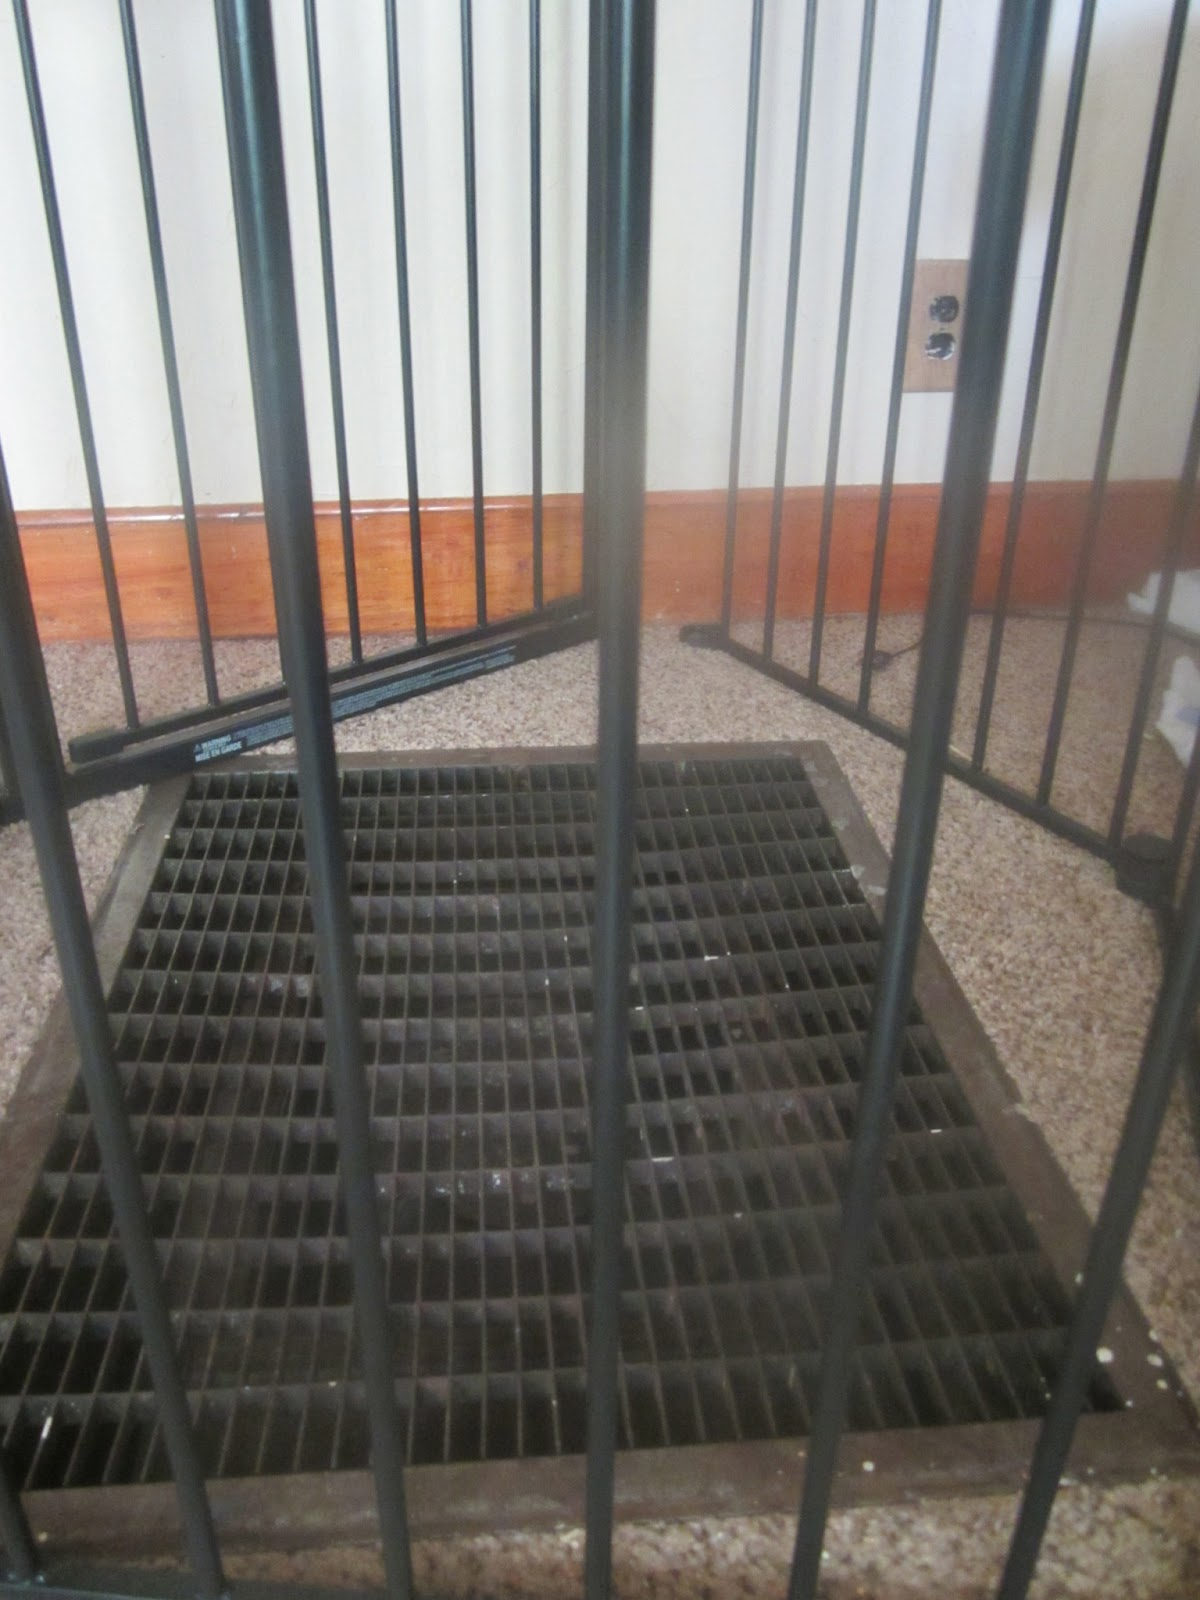 #945937 Floor Furnace Covers Images Brand New 3091 Furnace Floor Grates images with 1200x1600 px on helpvideos.info - Air Conditioners, Air Coolers and more